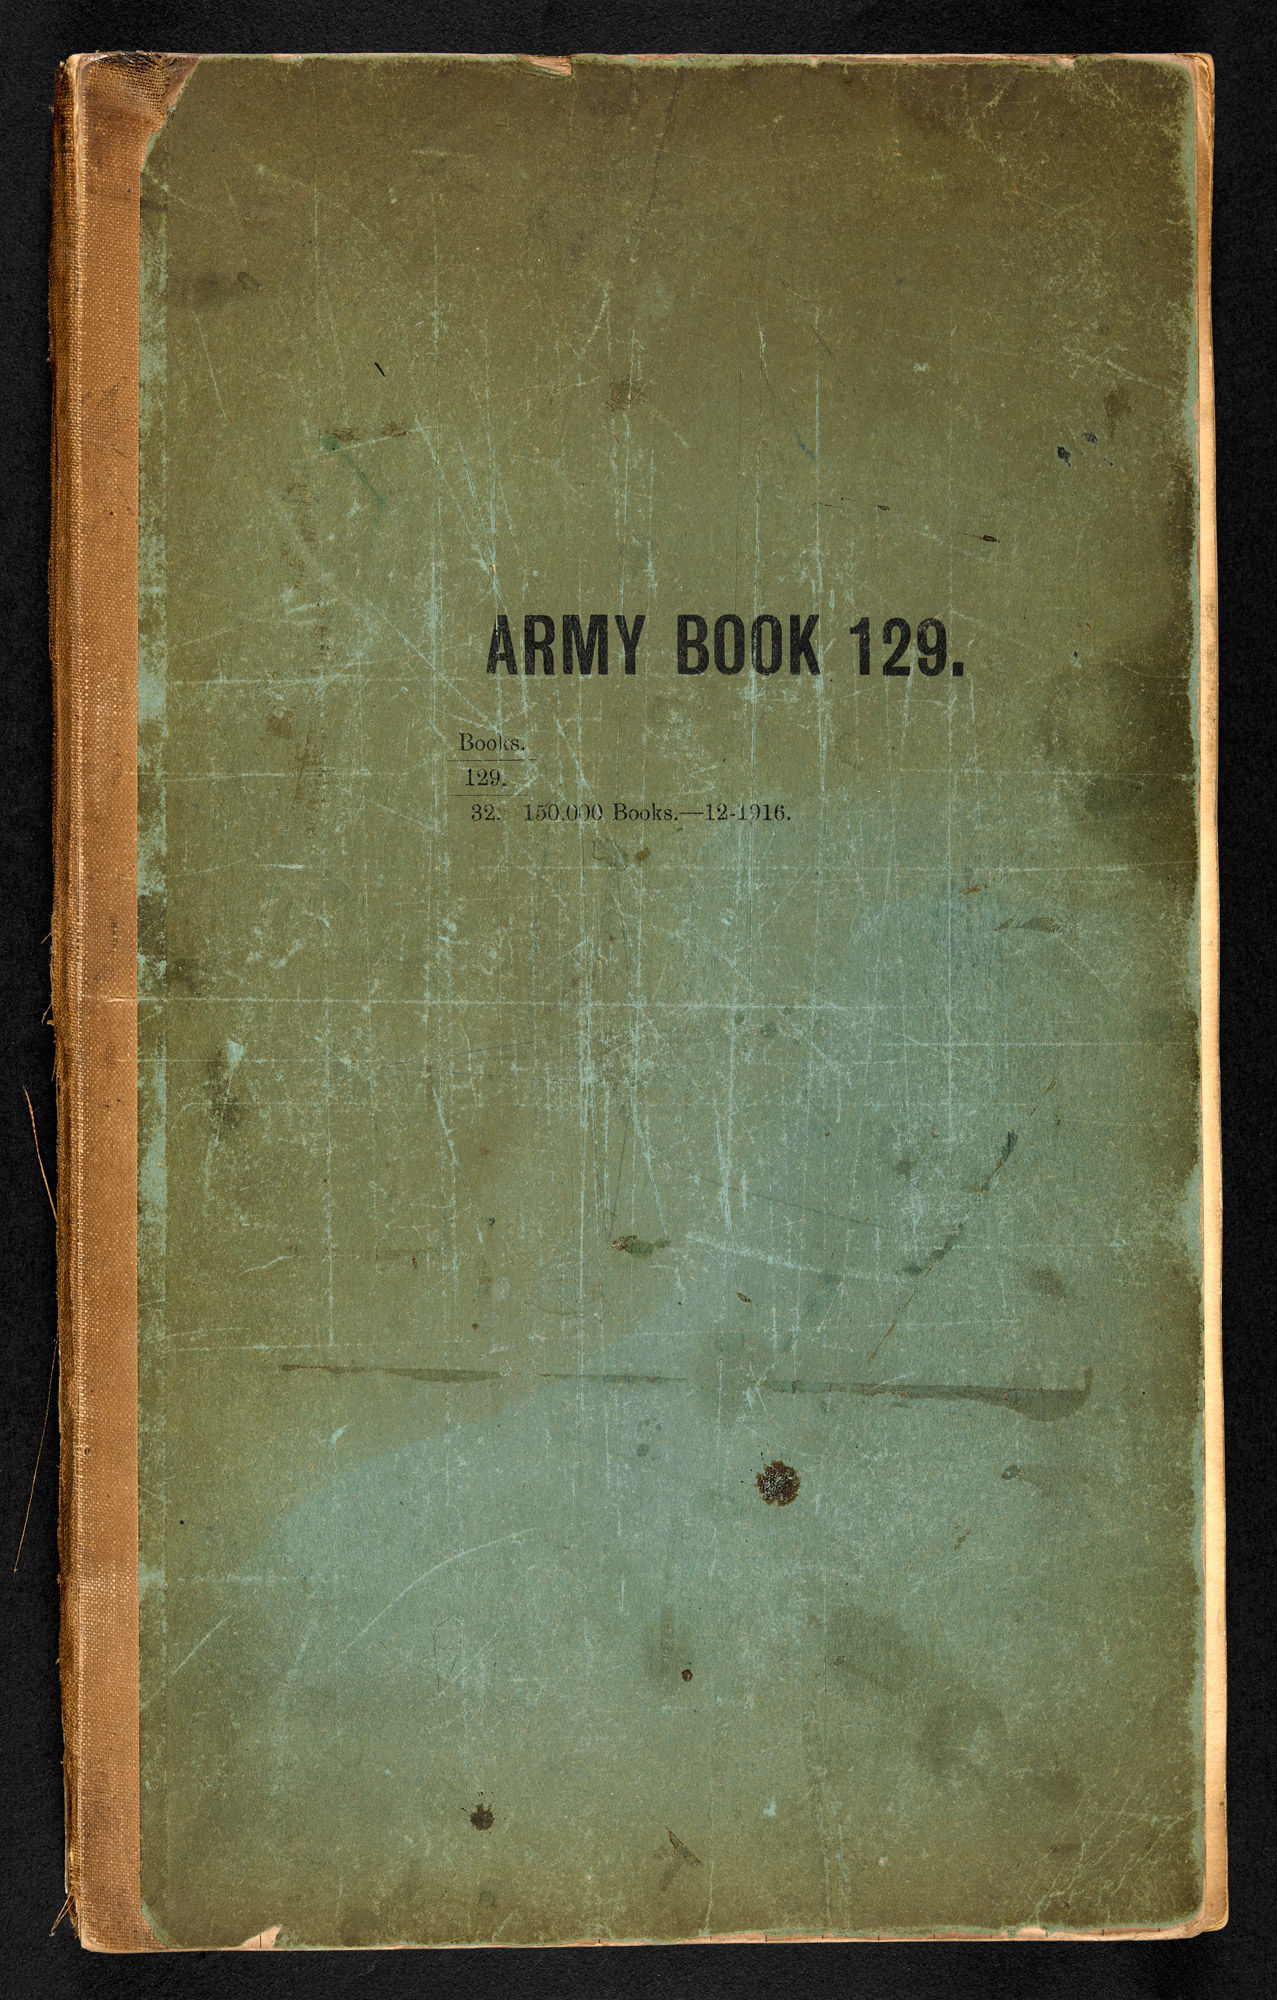 Alexander Flemings lab books from work as RAMC Captain in WWI.